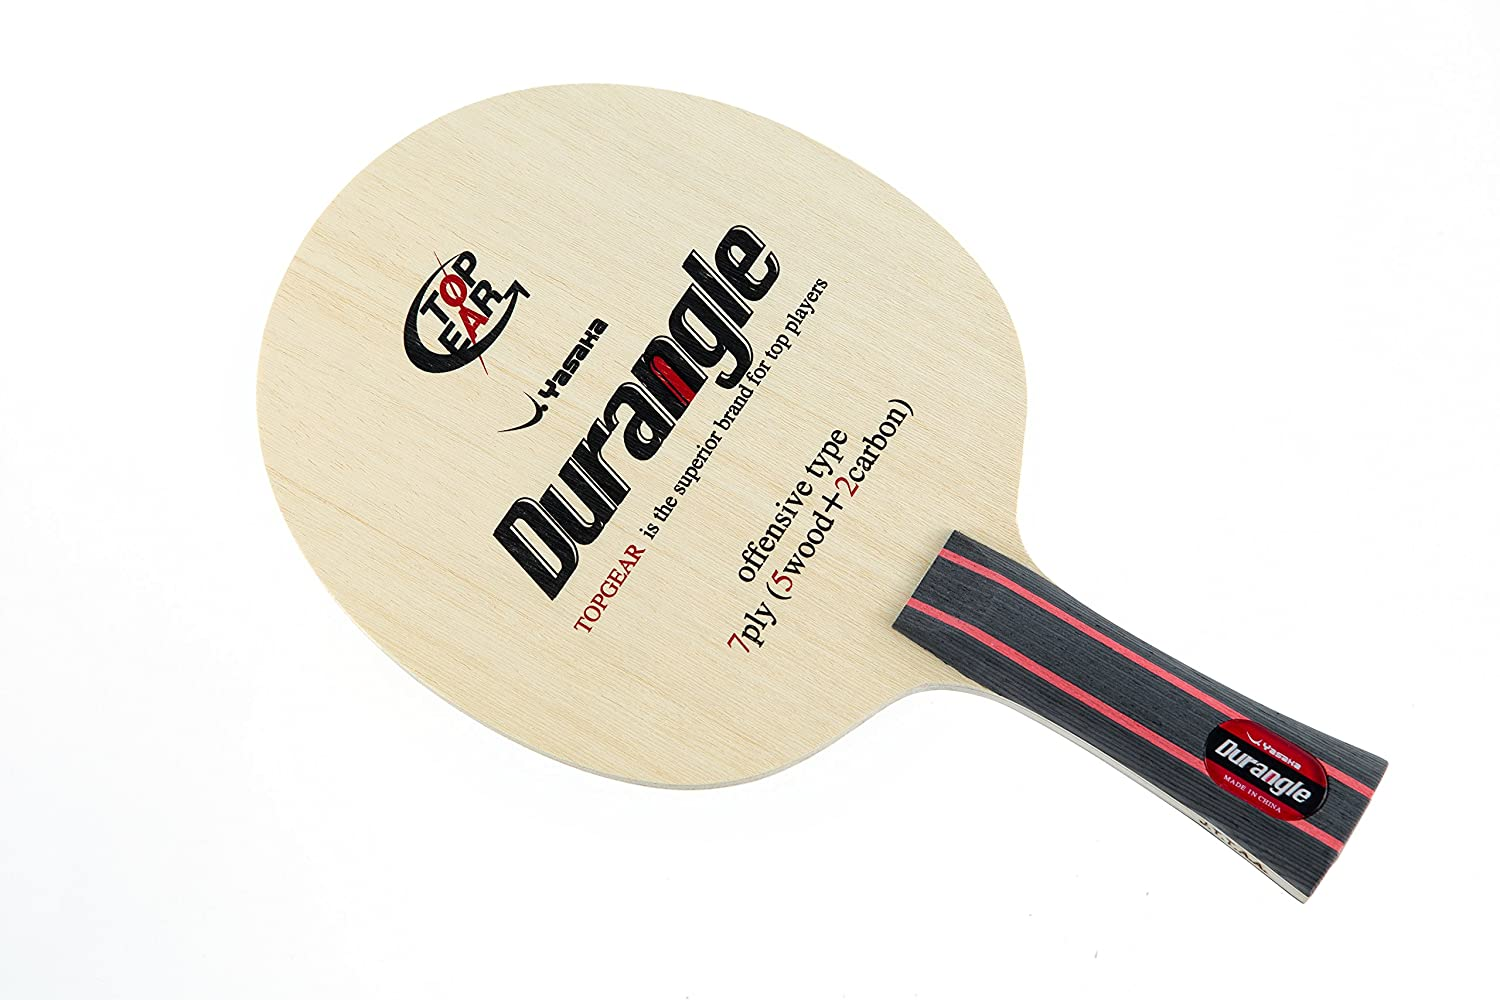 Amazon.com : Yasaka Durangle FL Table Tennis Racket : Sports ...